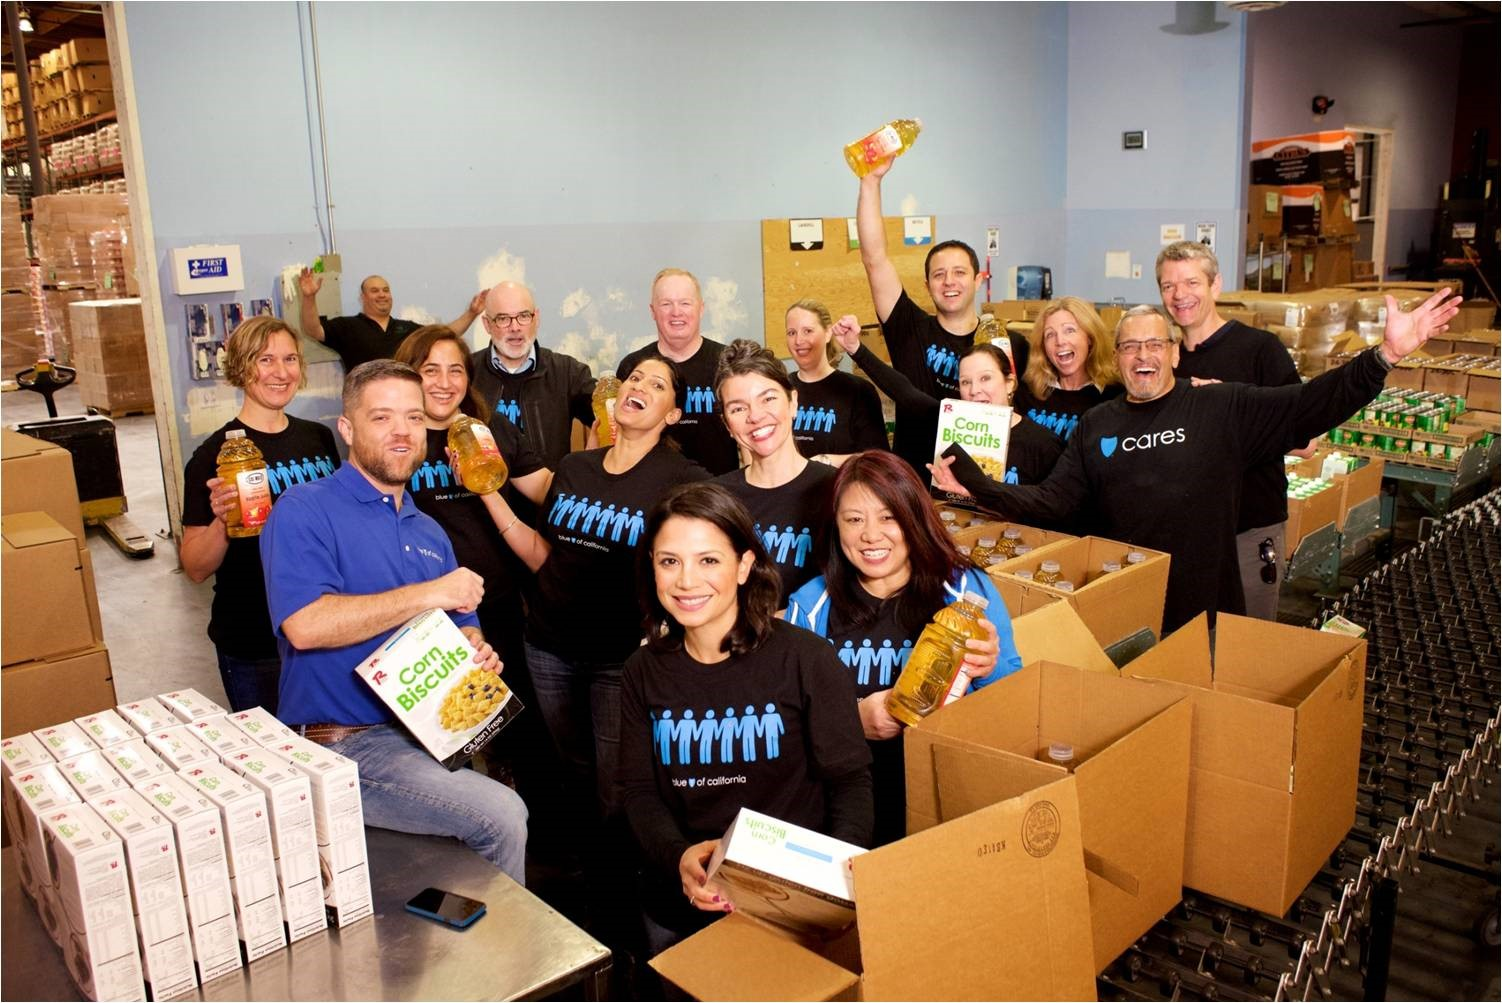 Blue Shield's Chief Health Officer, Dr. Marcus Thygeson, and employees volunteering at San Francisco and Marin Food Bank